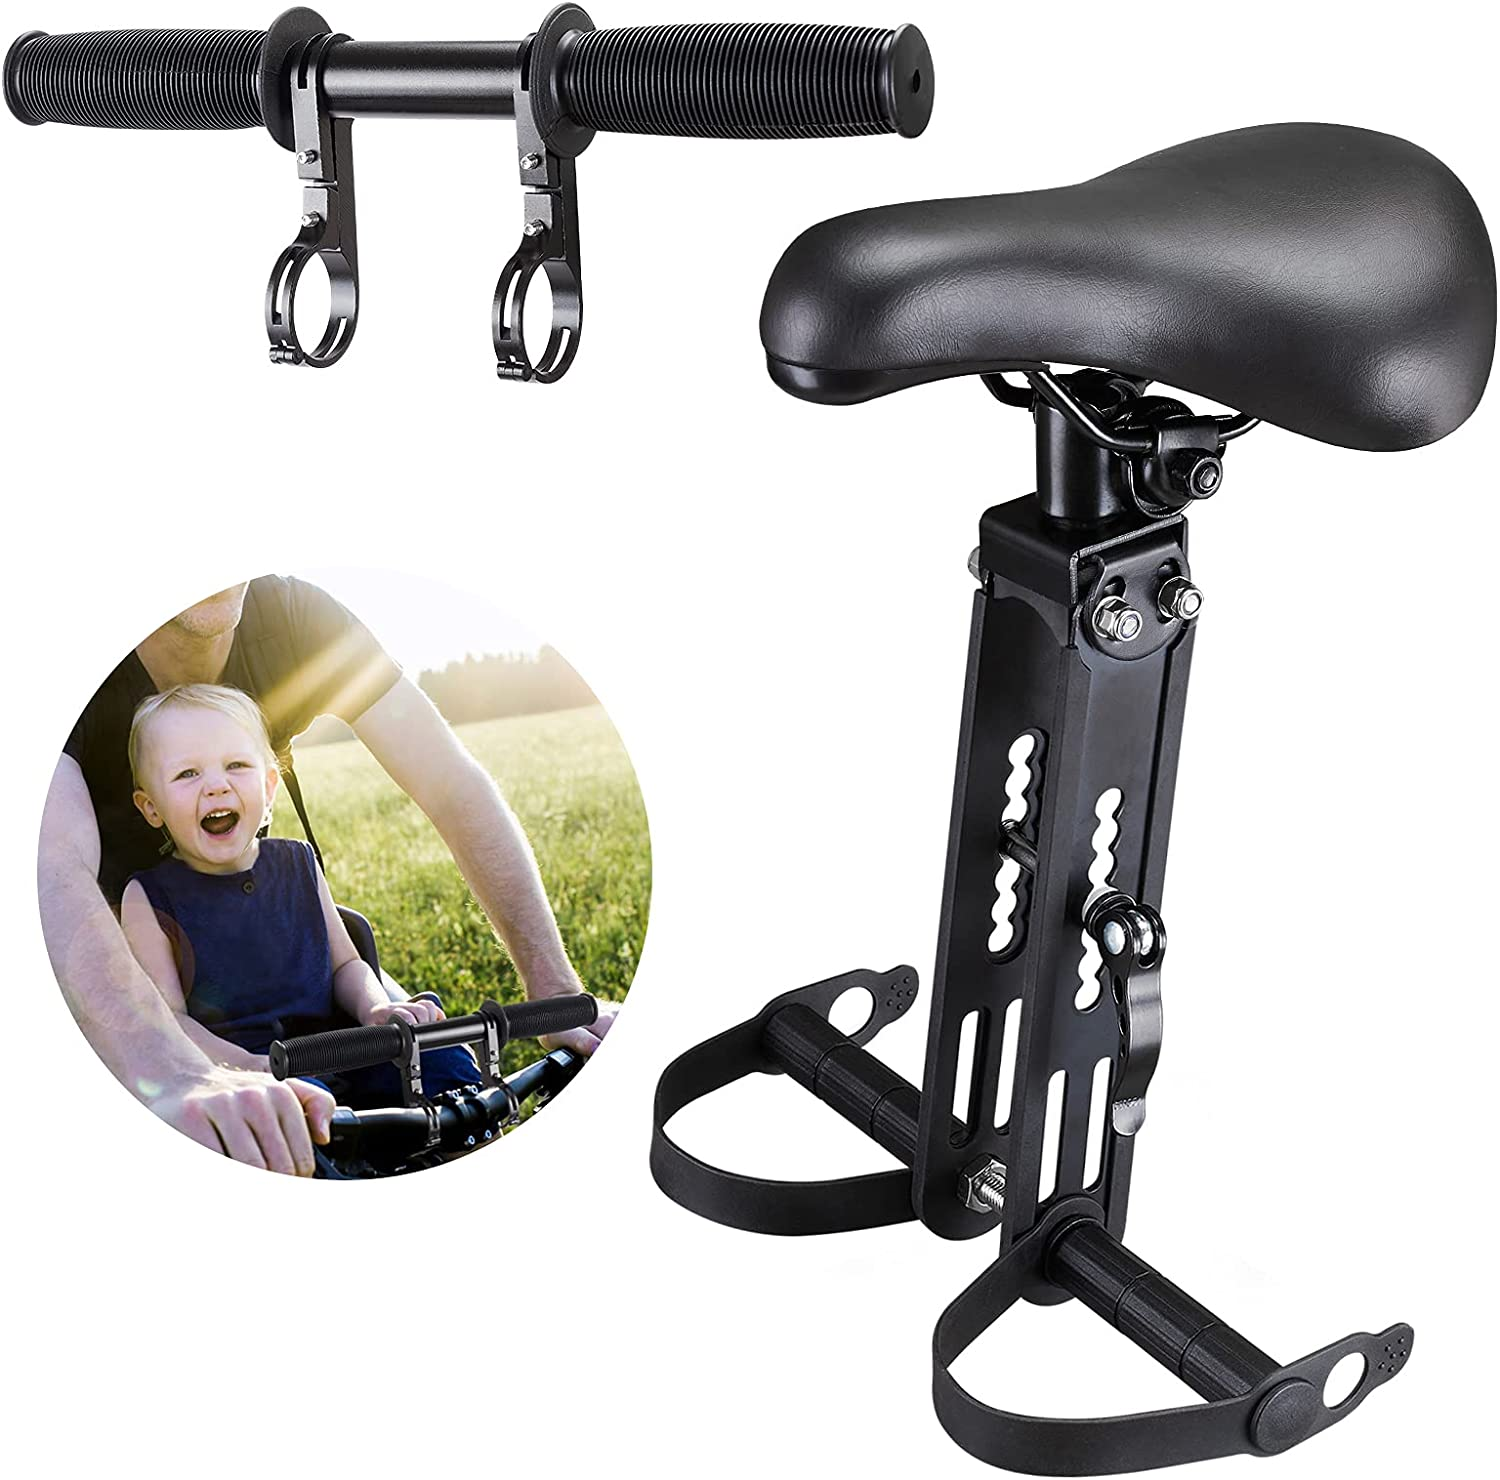 AZSPLS Child Bike Seat, Detachable Front Mounted Child Bicycle Seats with Foot Pedals, Kids MTB Child Seat and Handlebar Accessory Combo Pack Compatible with Adult Mountain Bike